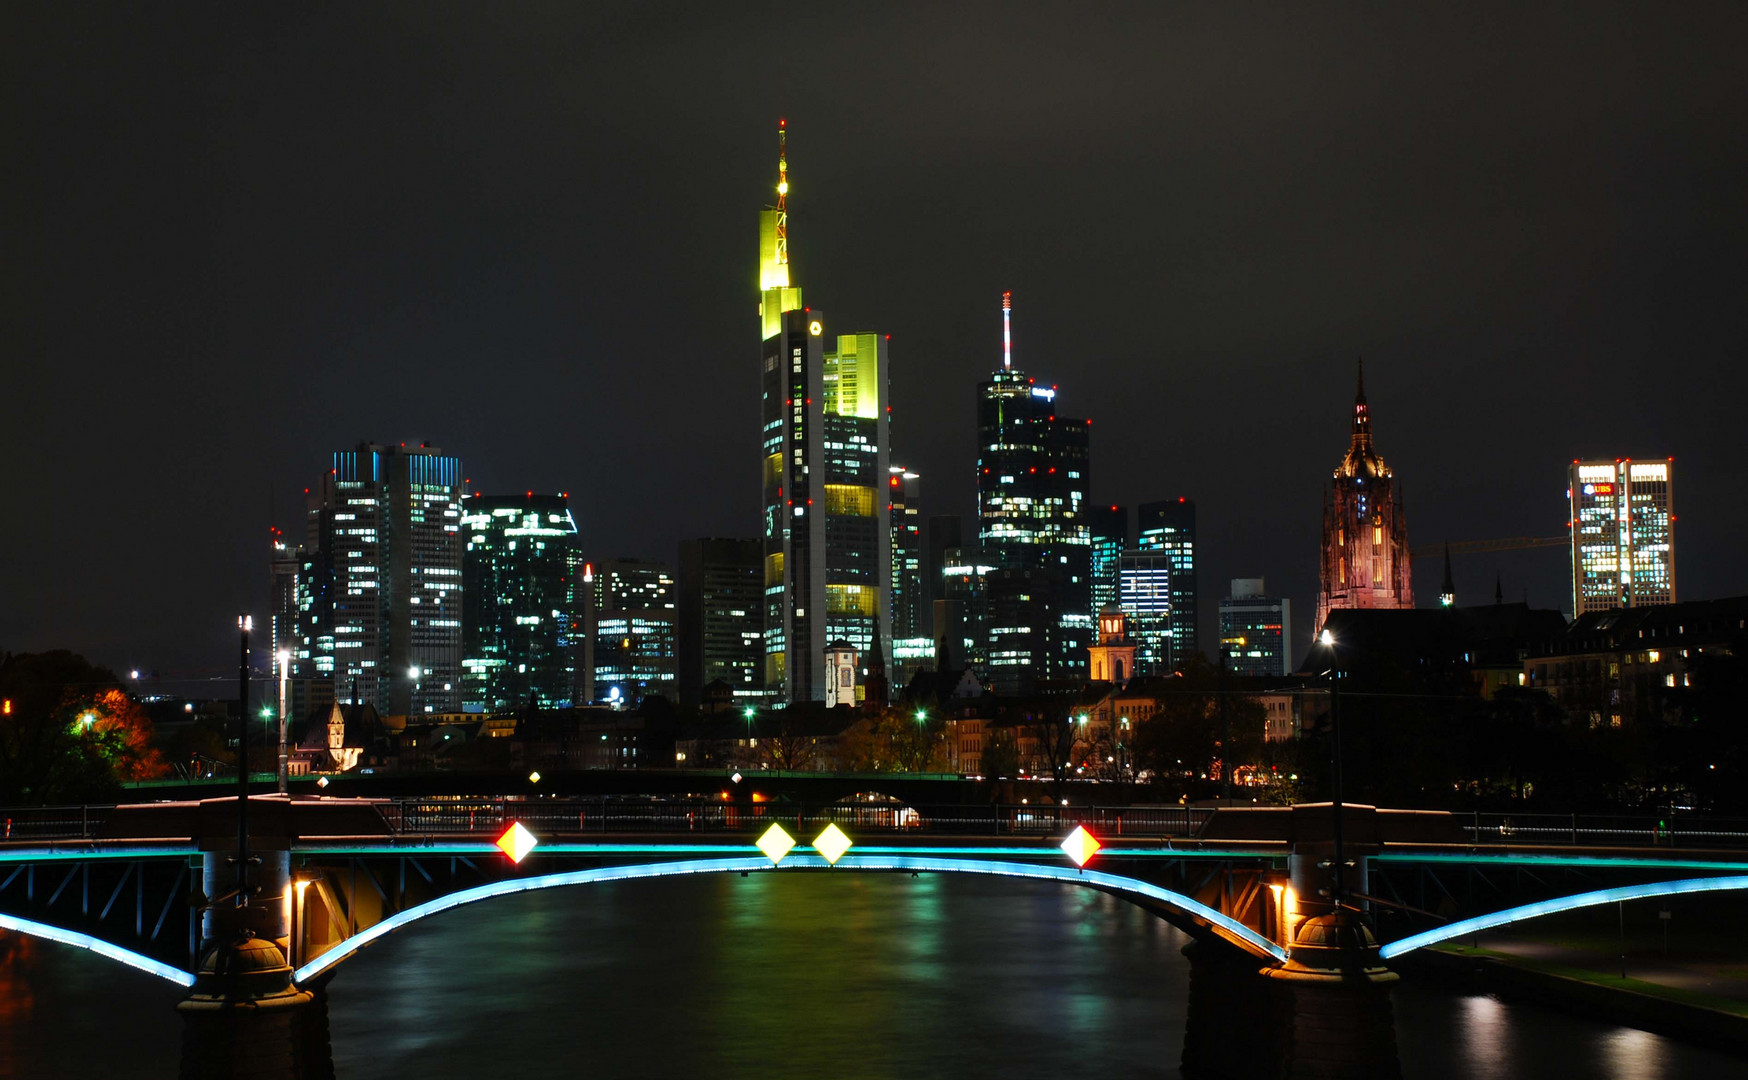 frankfurt skyline bei nacht foto bild deutschland europe hessen bilder auf fotocommunity. Black Bedroom Furniture Sets. Home Design Ideas